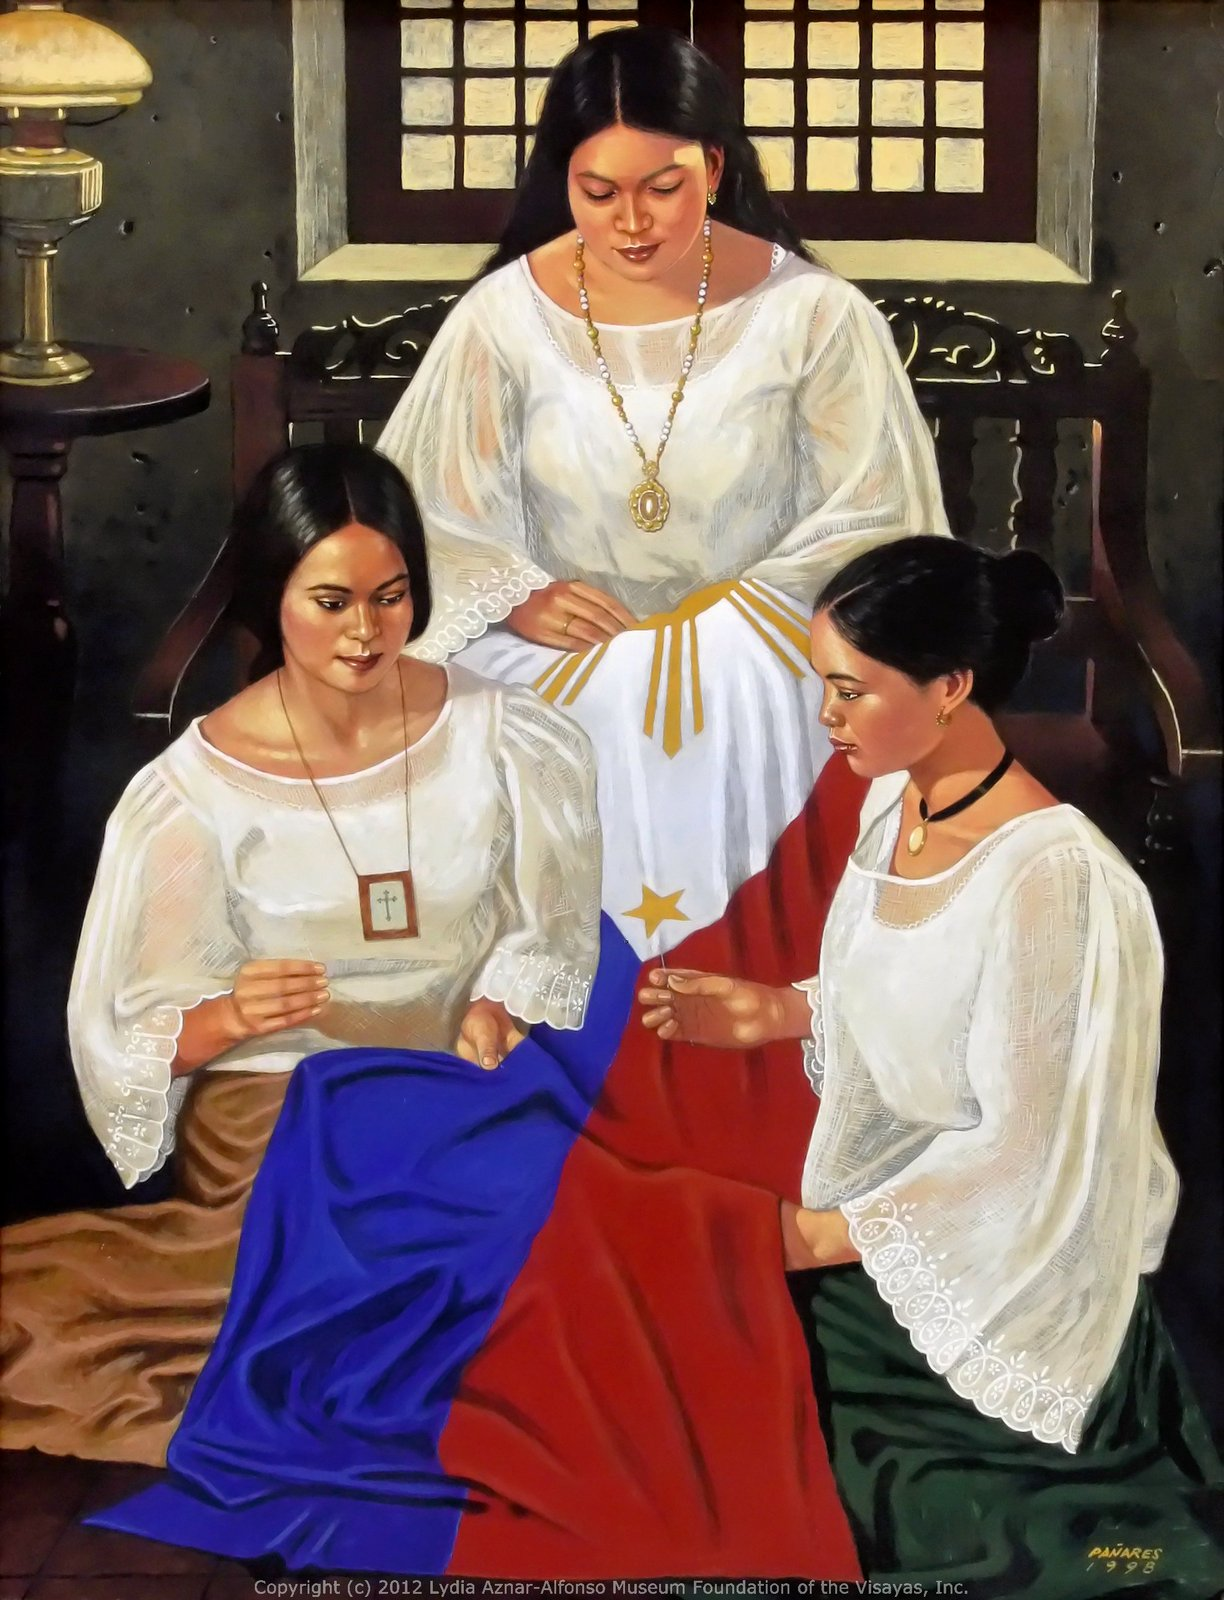 114th independence day lydia aznar alfonso museum foundation of three women mauricia gahuman buena ricardo and justina pena made the philippine flag in cebu as the symbol of nationhood for the cebu katipuneros buycottarizona Images